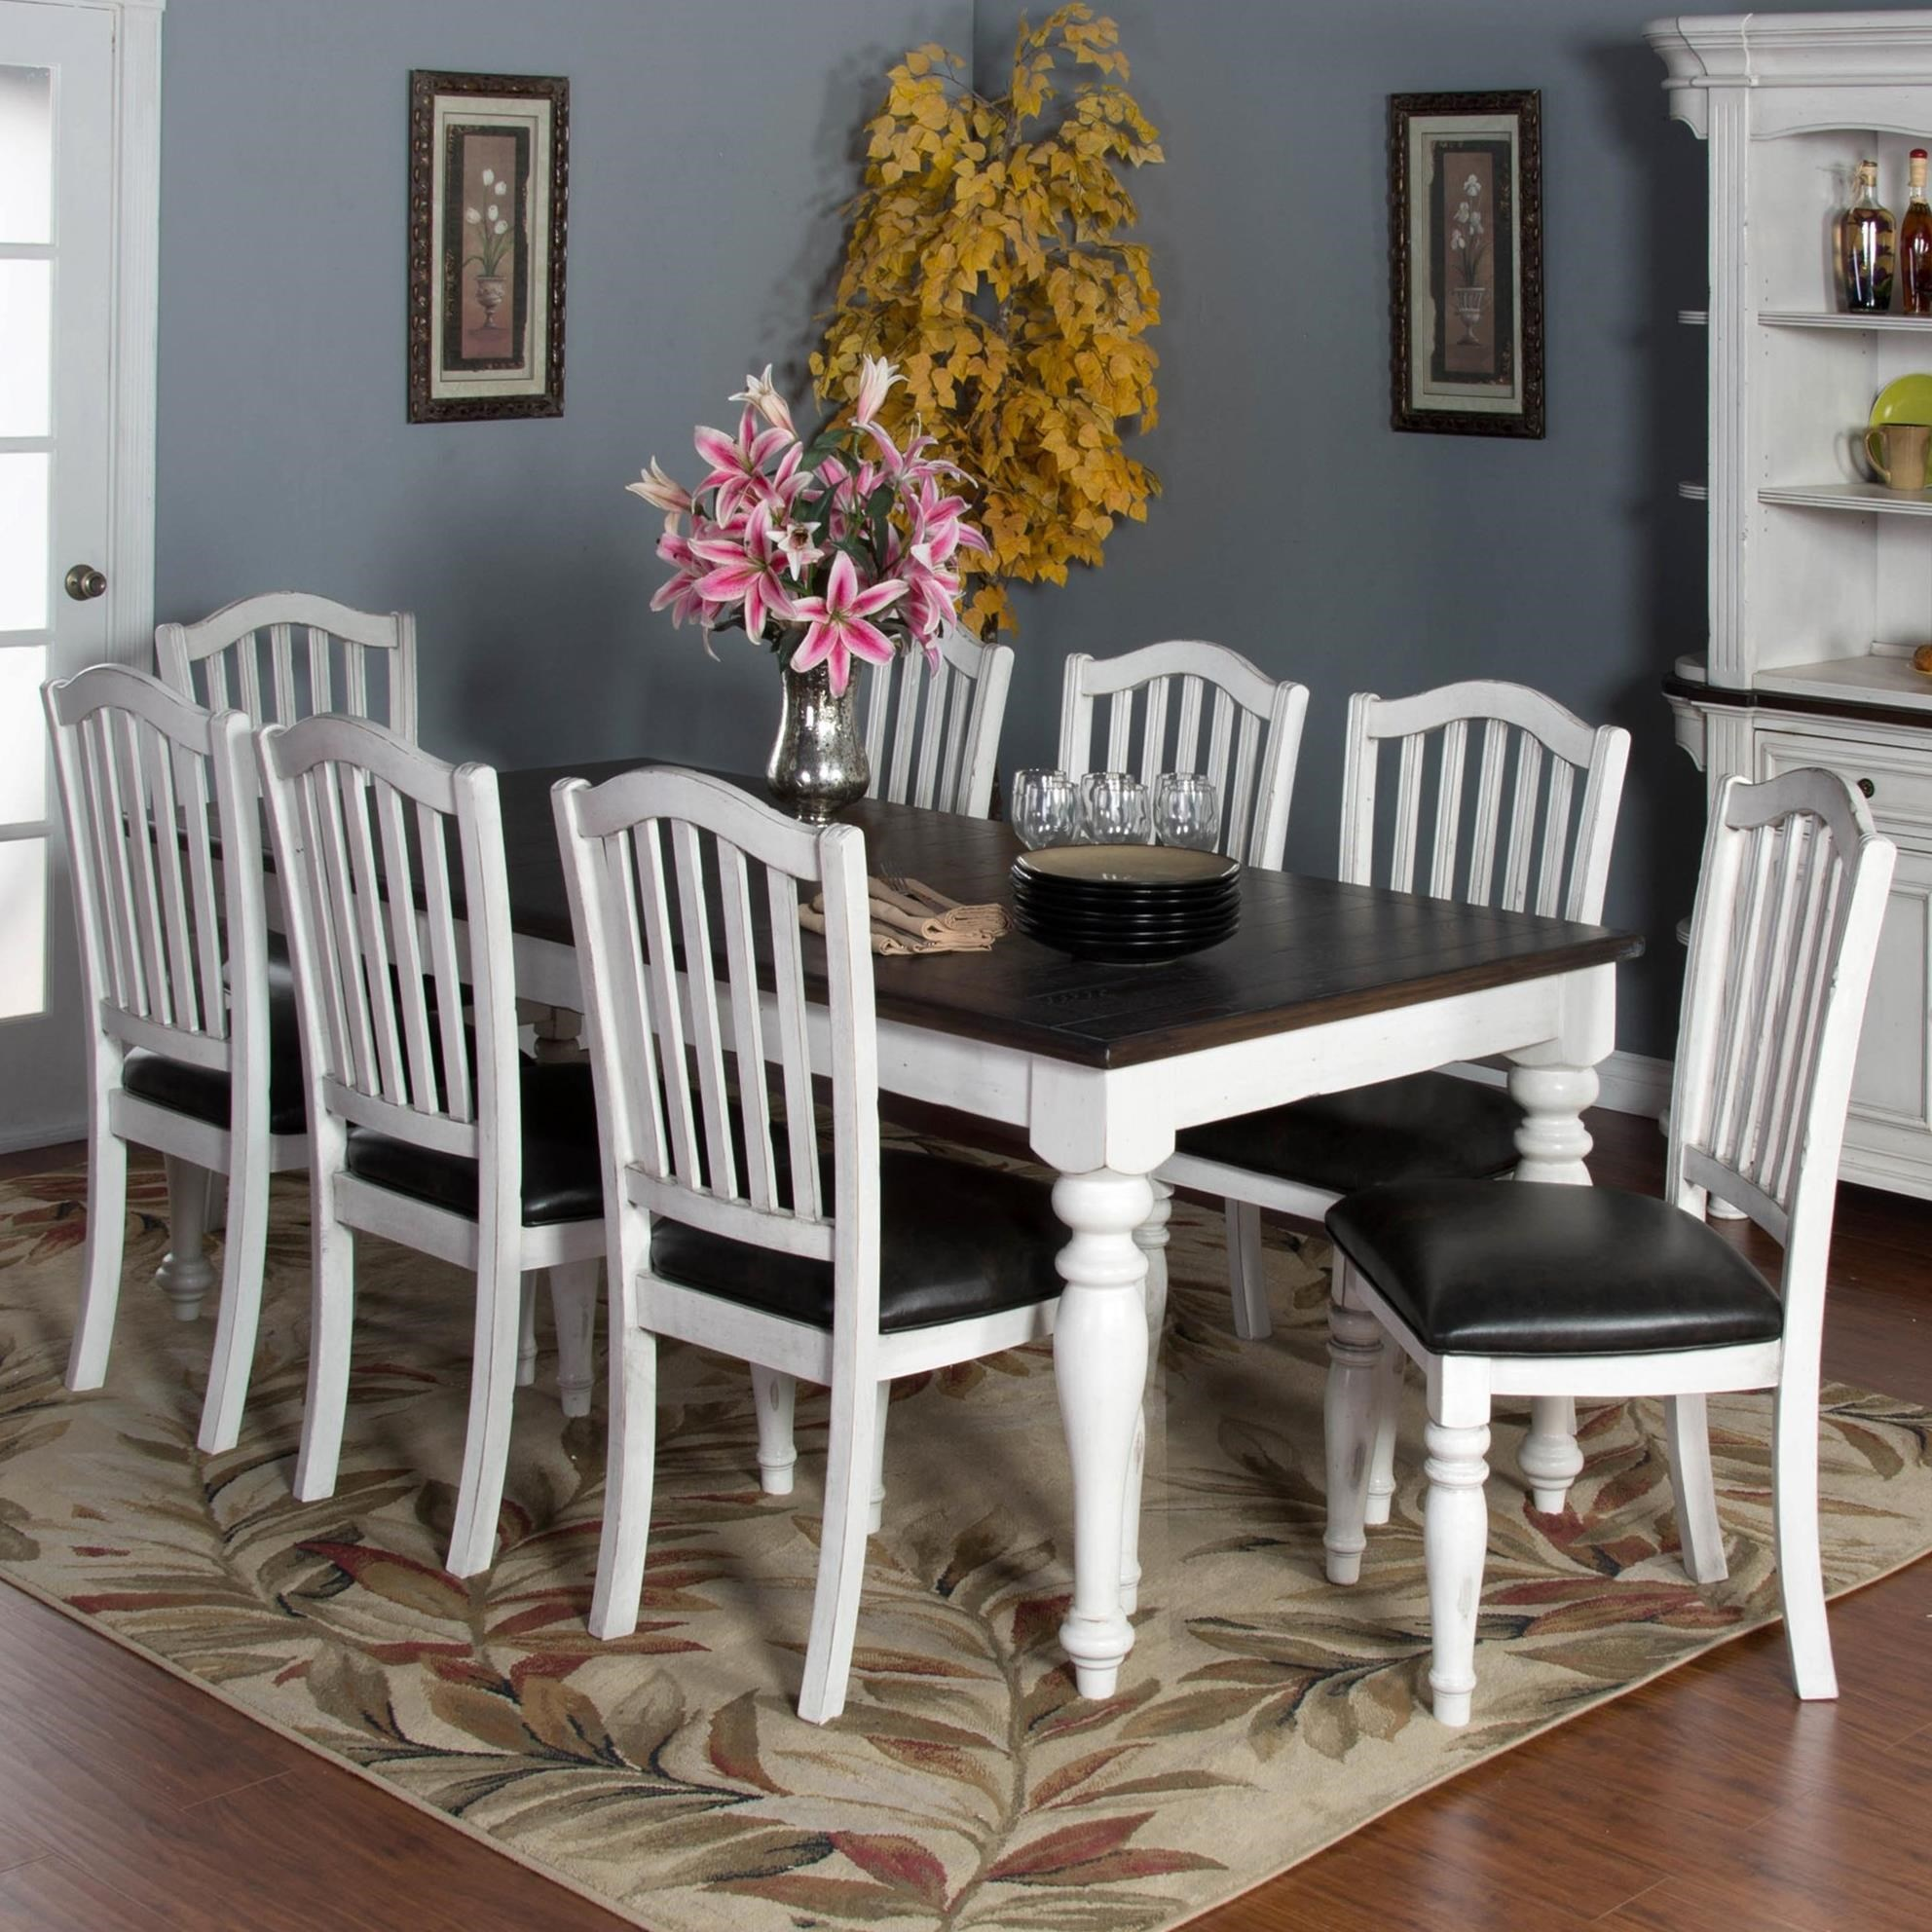 Lovely Sunny Designs Bourbon County 9 Piece Extension Dining Table Set   Item  Number: 1015FC